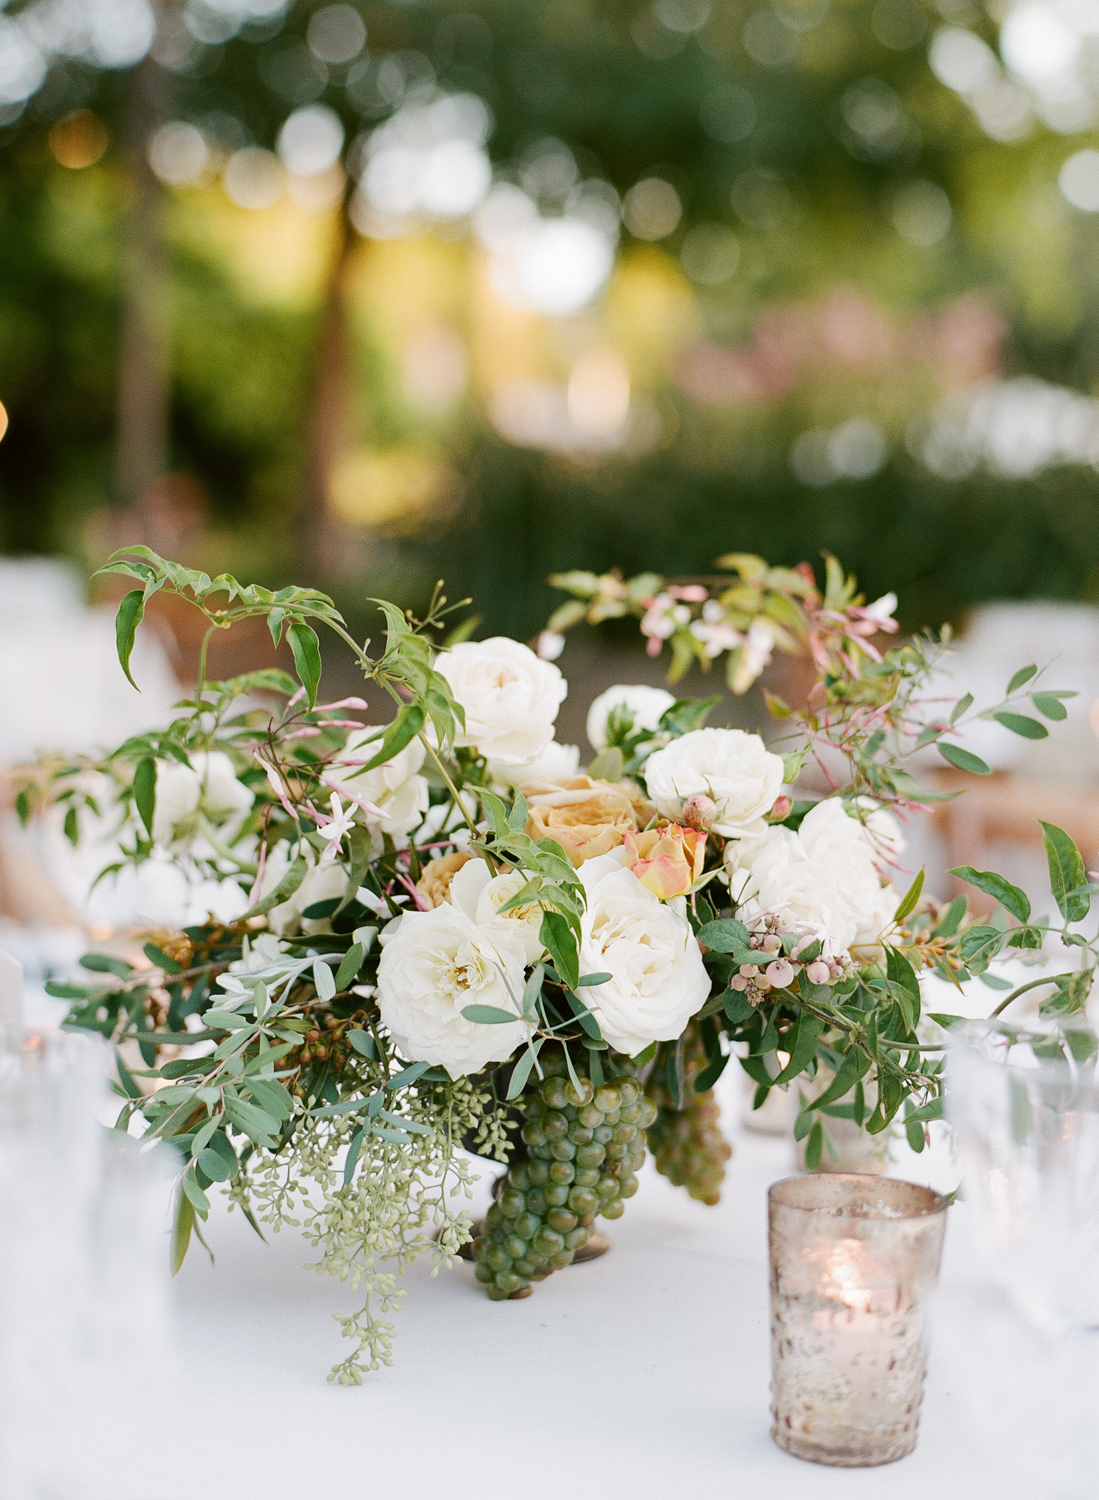 Grapes, among other beautiful accents, make up these Max Gill centerpieces, highlighted by antiqued votive candles; photo by Sylvie Gil